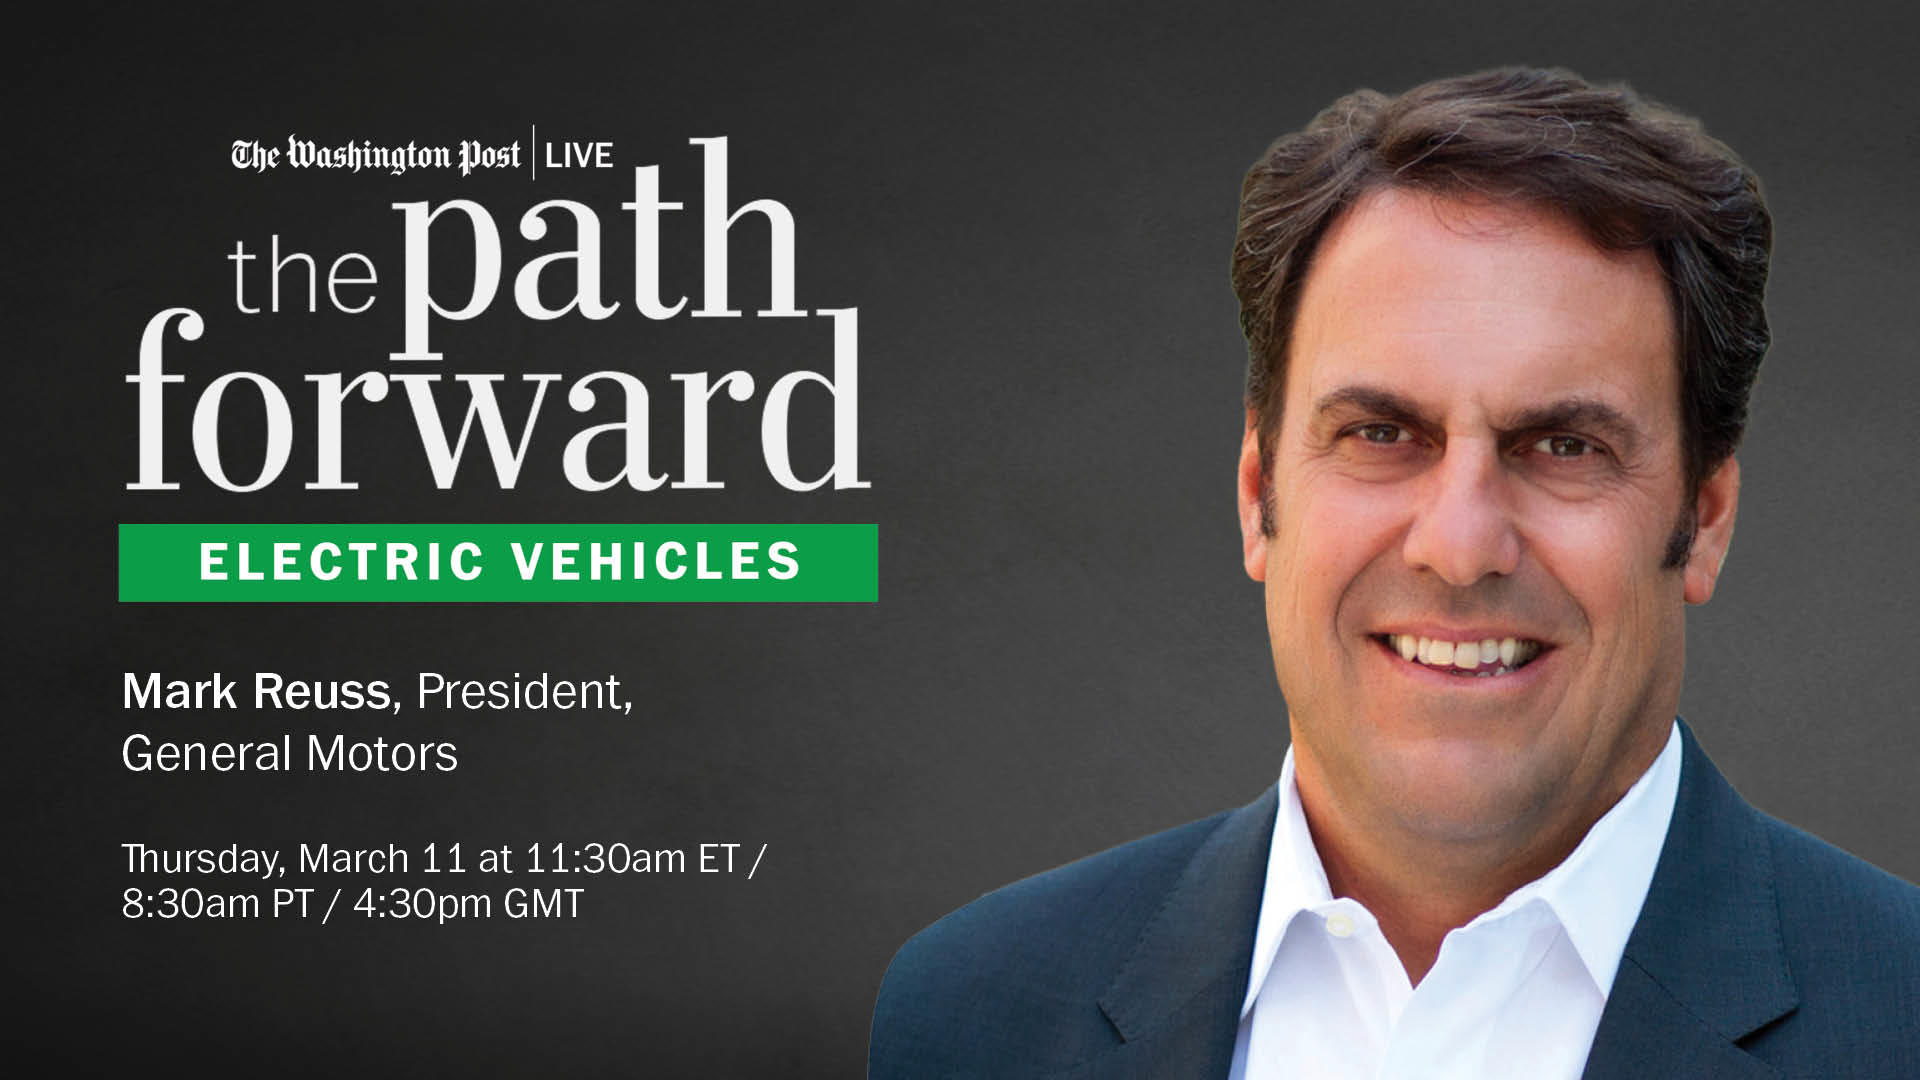 The Path Forward - Electric Vehicles webinar. March 11 at 8:30 am